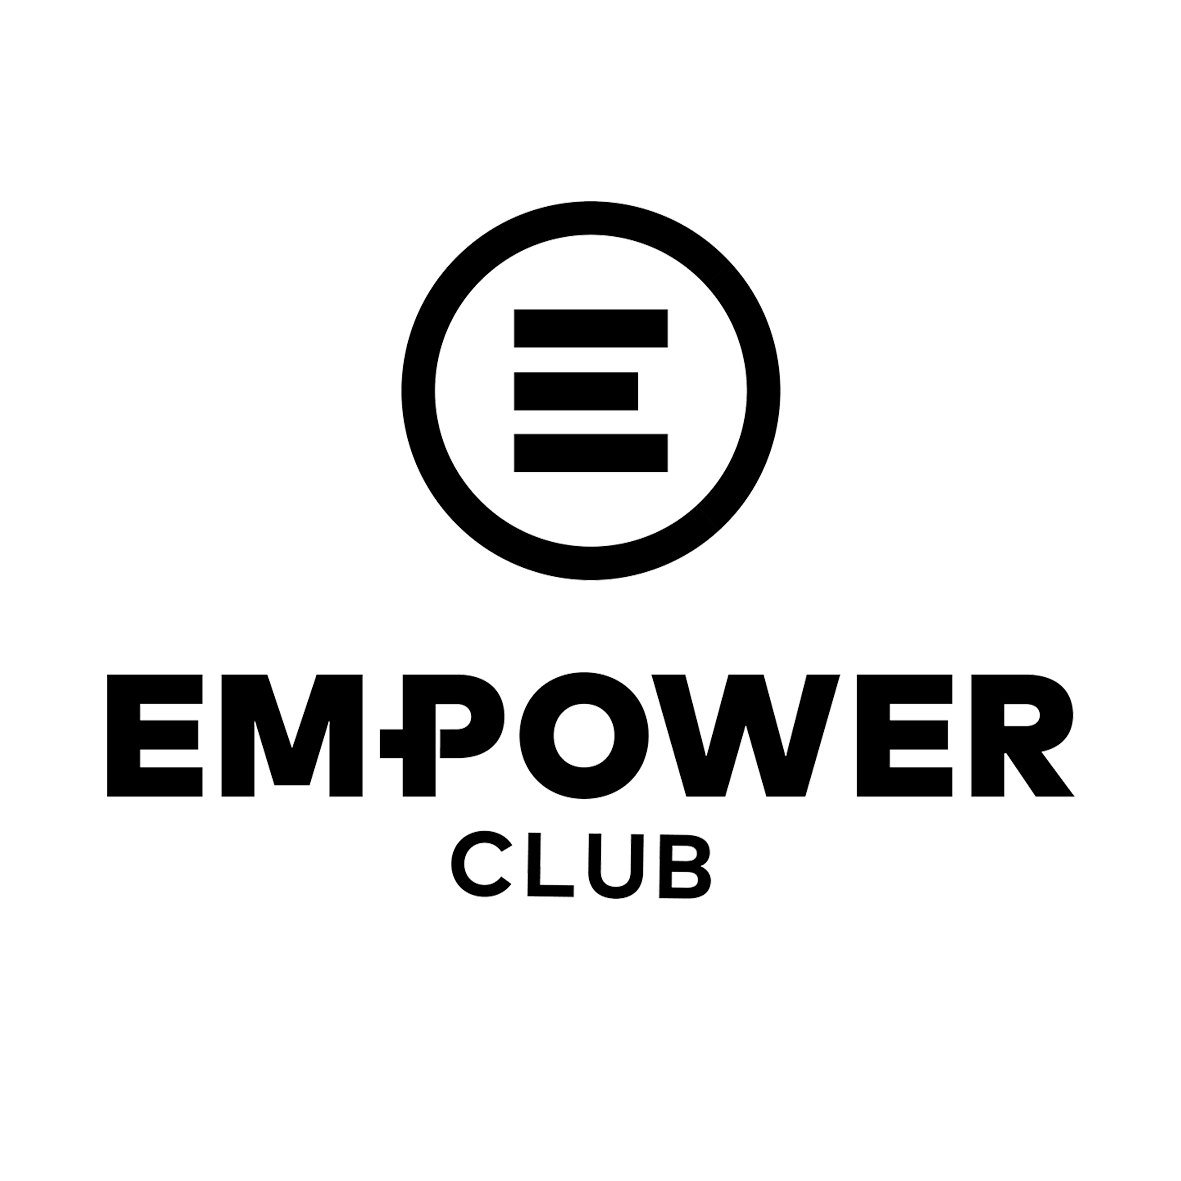 Empower-Club-BLACK.png